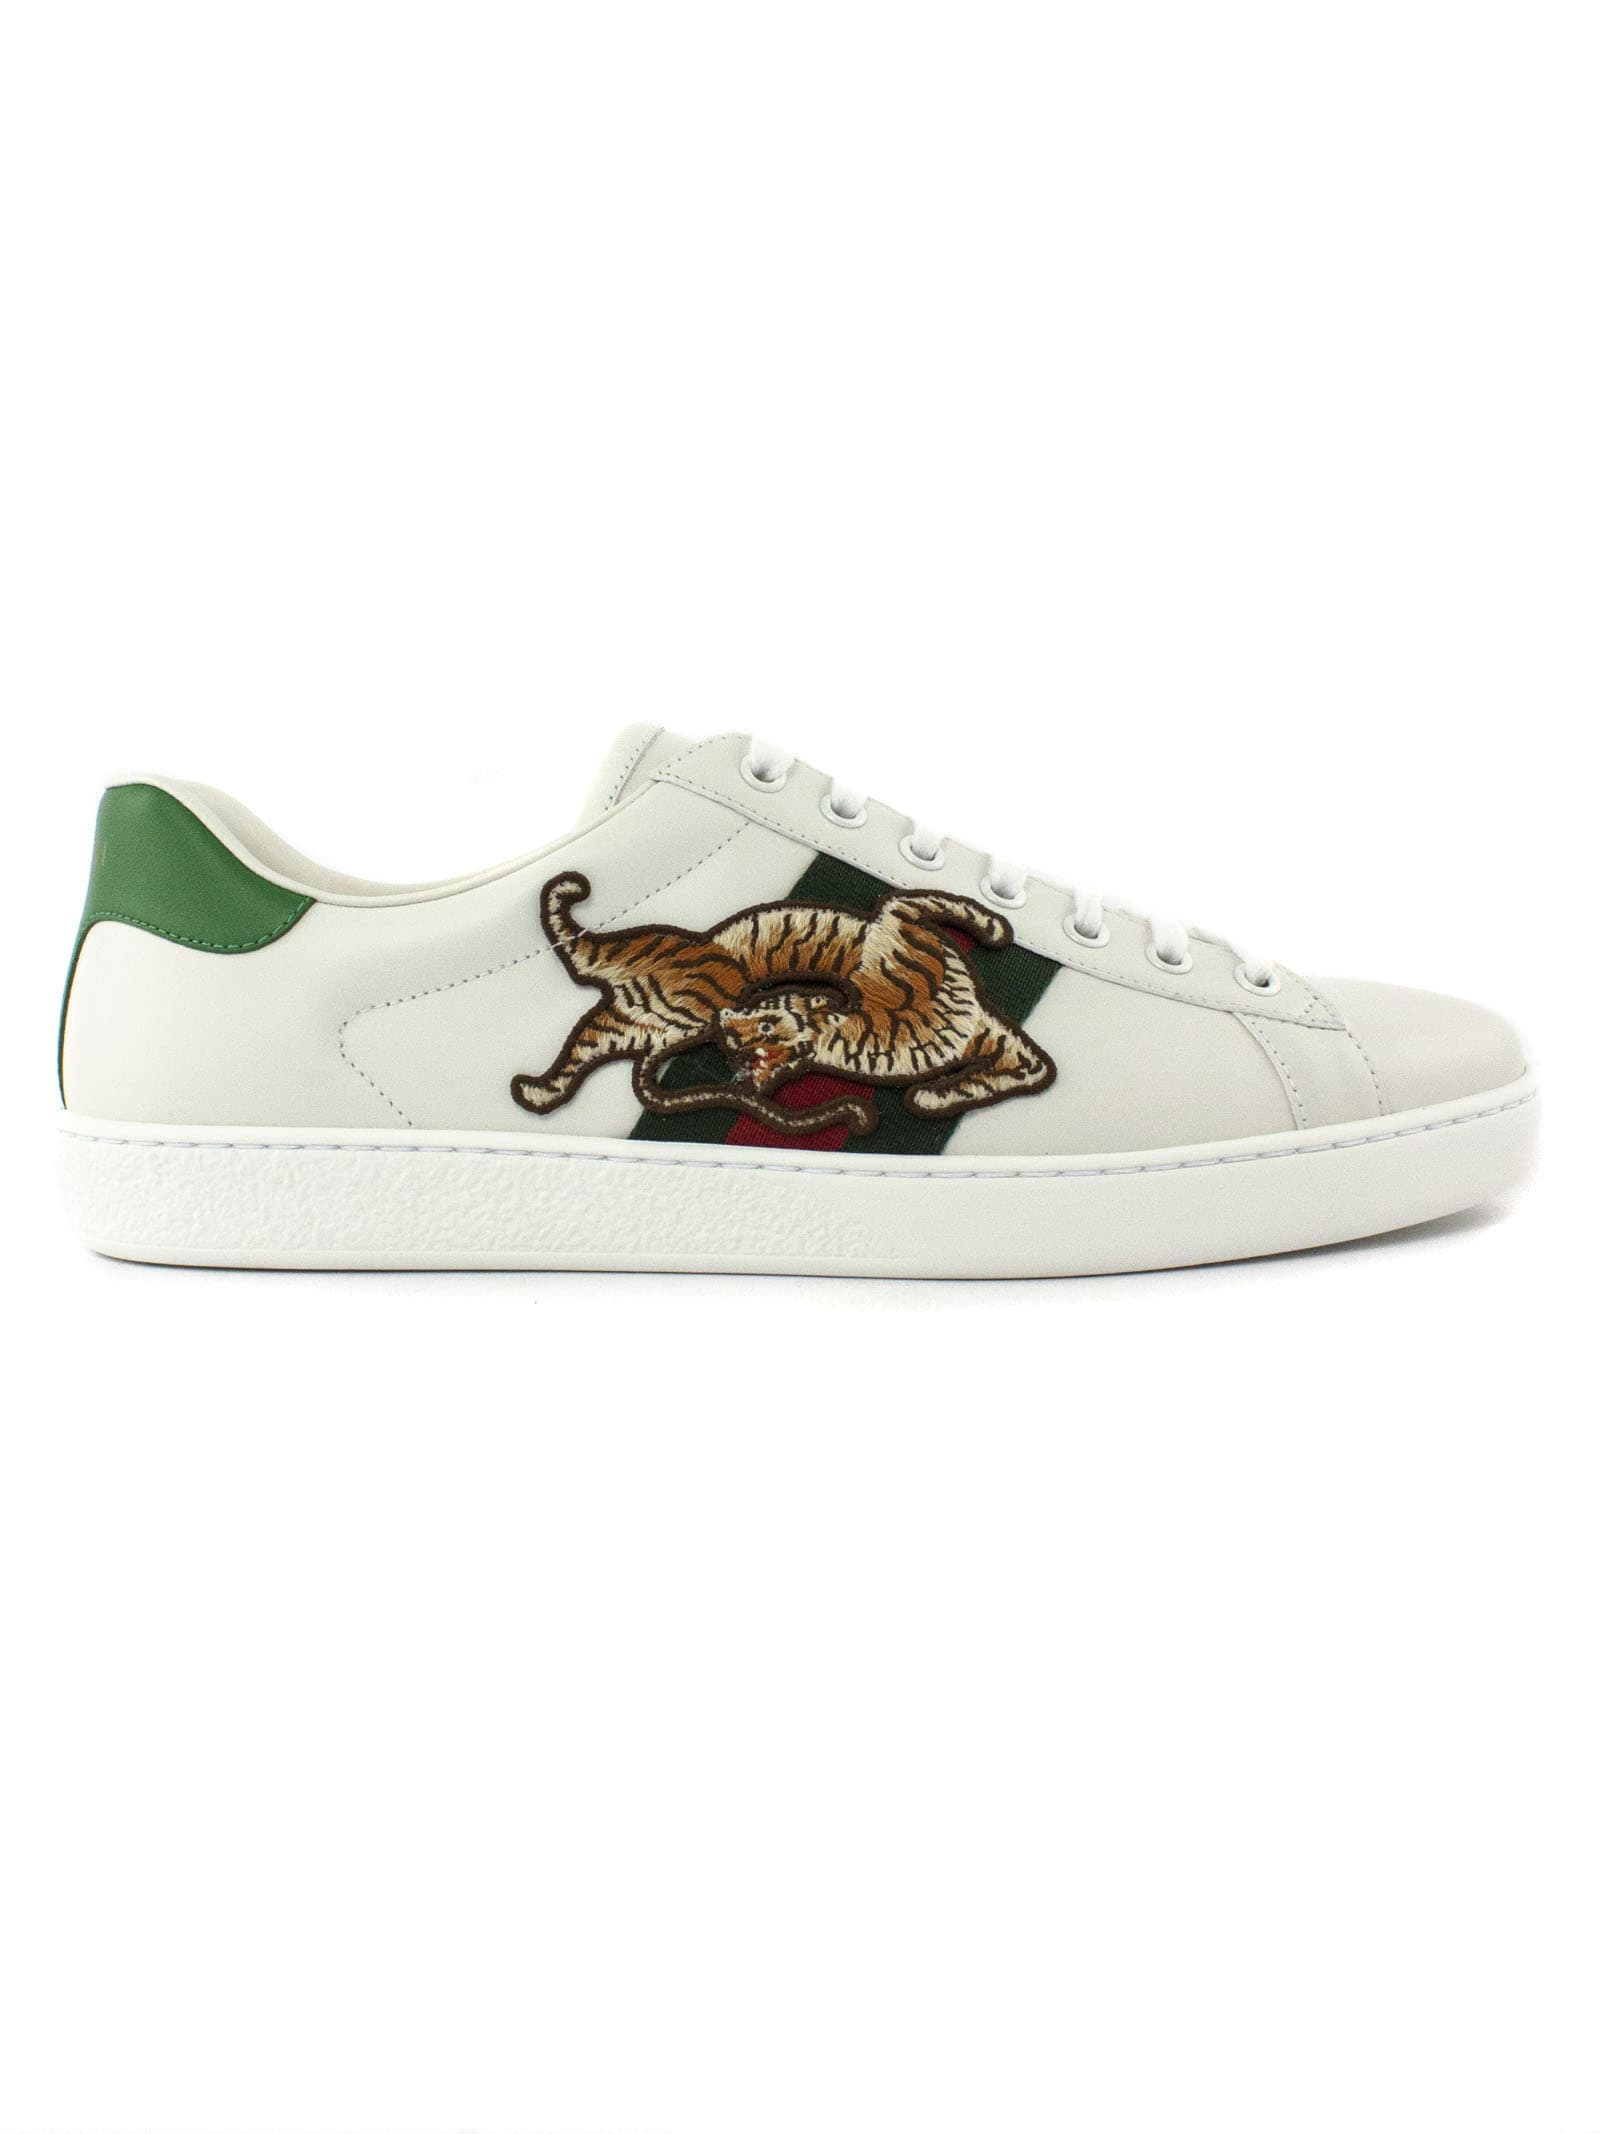 Gucci Low tops WHITE LEATHER ACE SNEAKERS